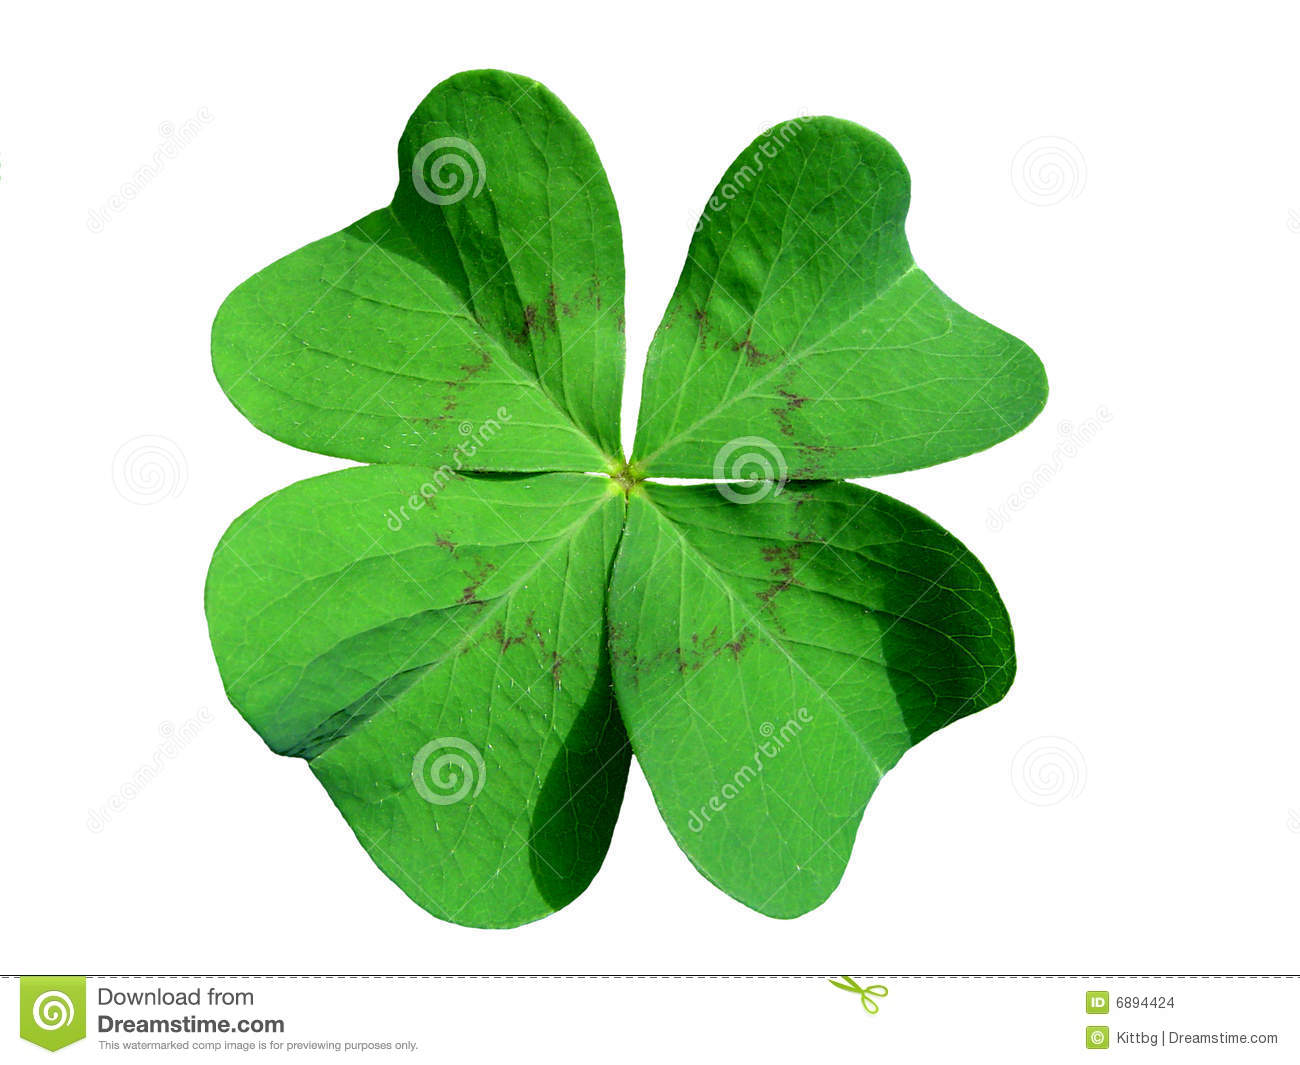 clover hispanic singles Patient registration asian african american am indian caucasian hispanic about white clover.